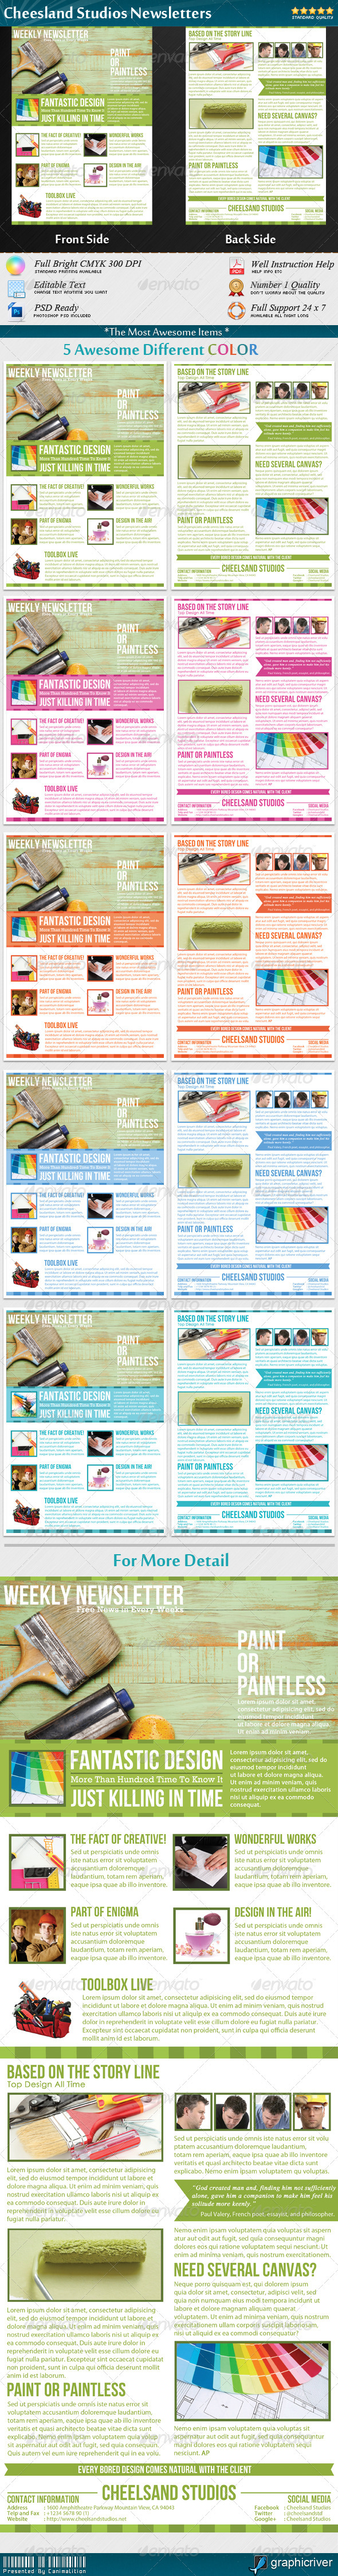 Cheesland Studios Newsletters - Newsletters Print Templates